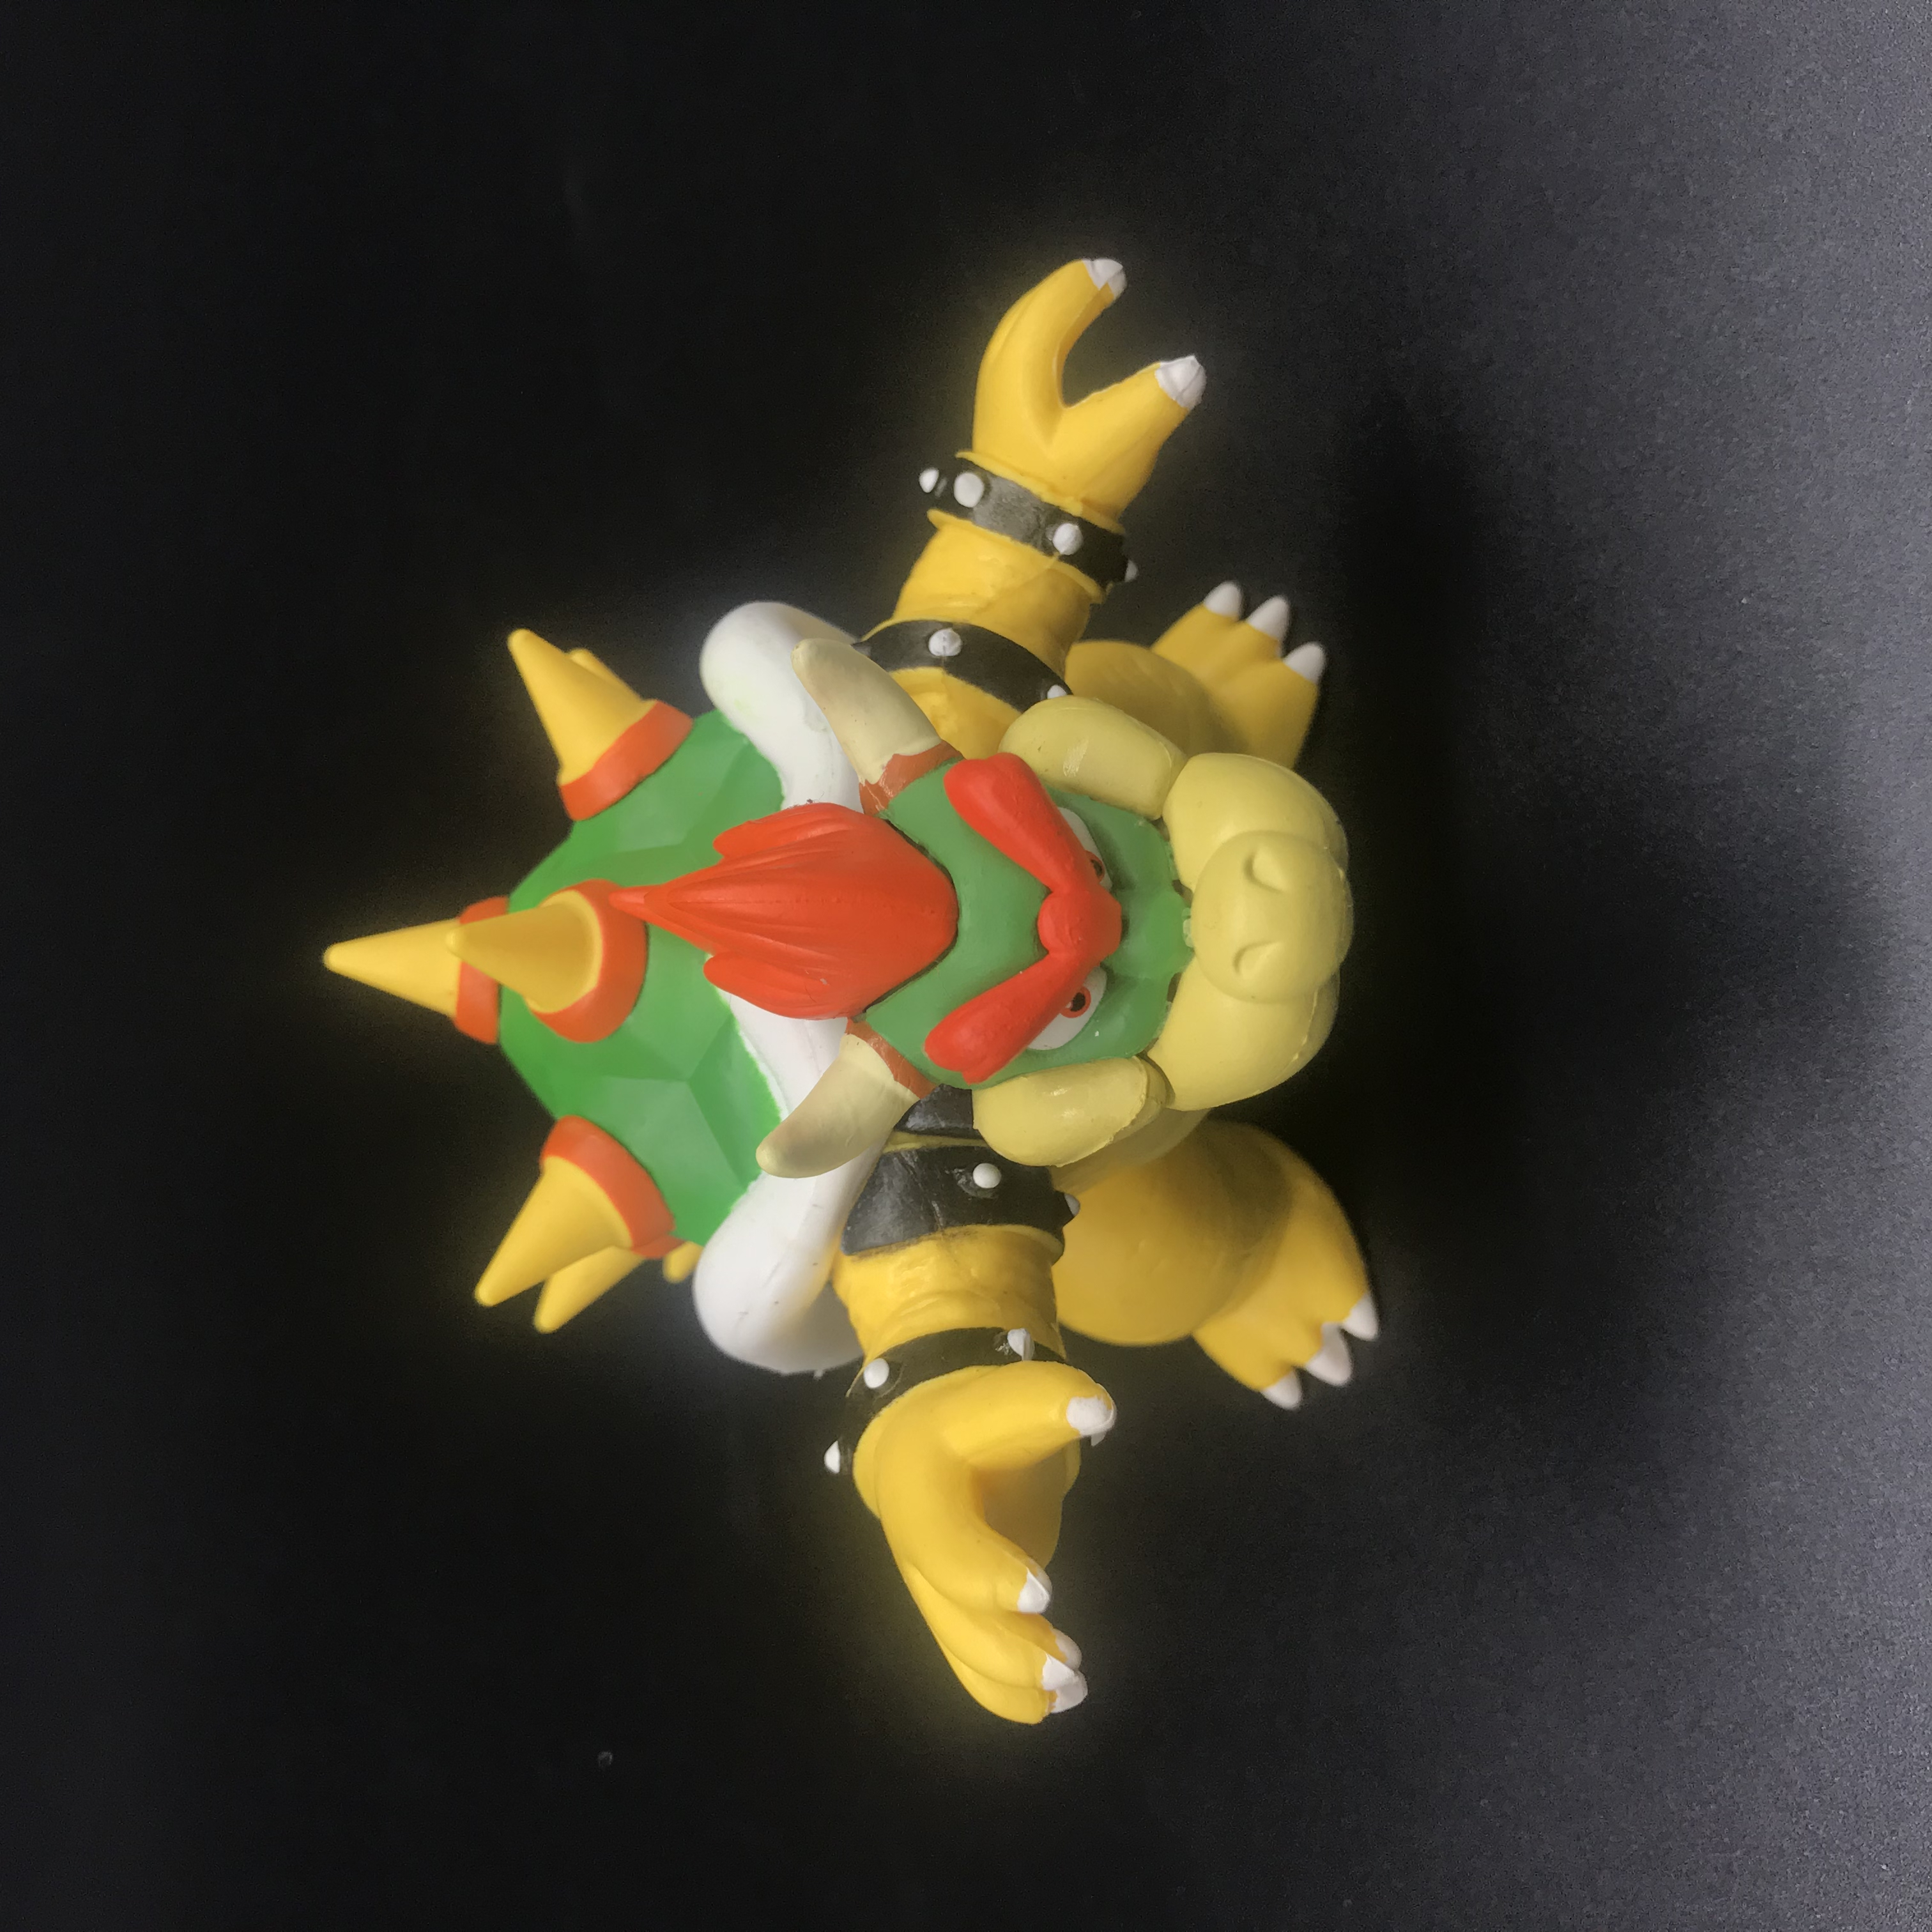 12cm super mario bros bowser model toys pvc figure classic doll for children gifts in Action Toy Figures from Toys Hobbies